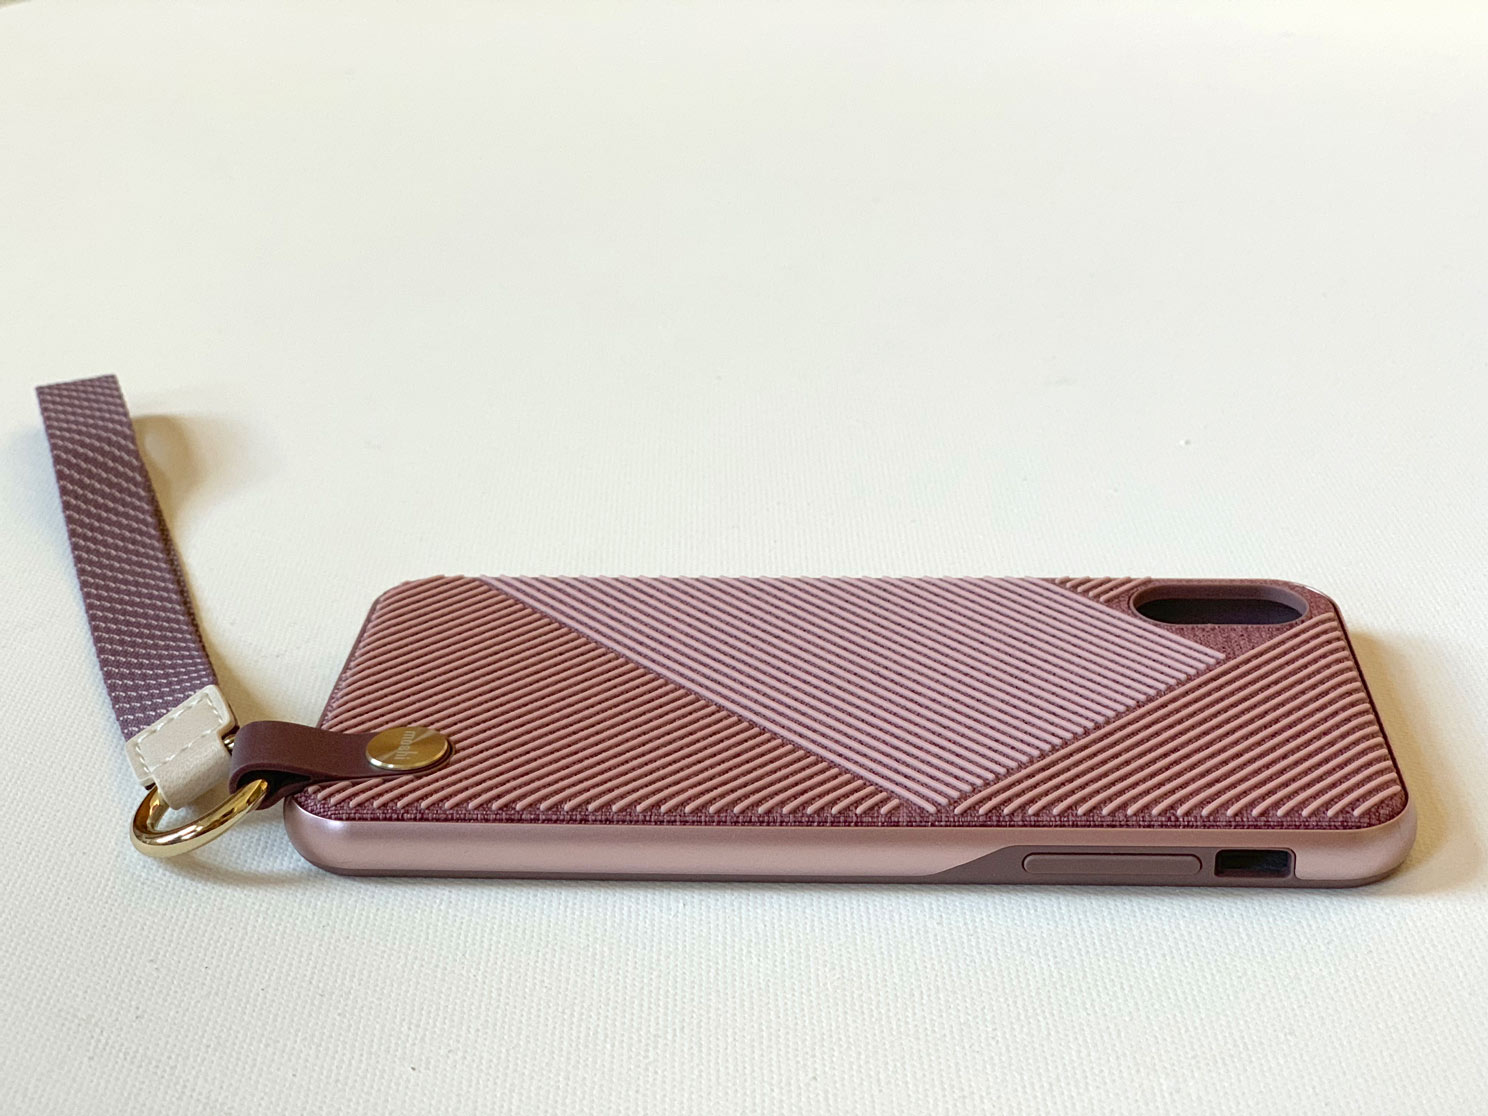 IPhone-XS-Max-Moshi-Altra-Case-With-Strap-side.jpg